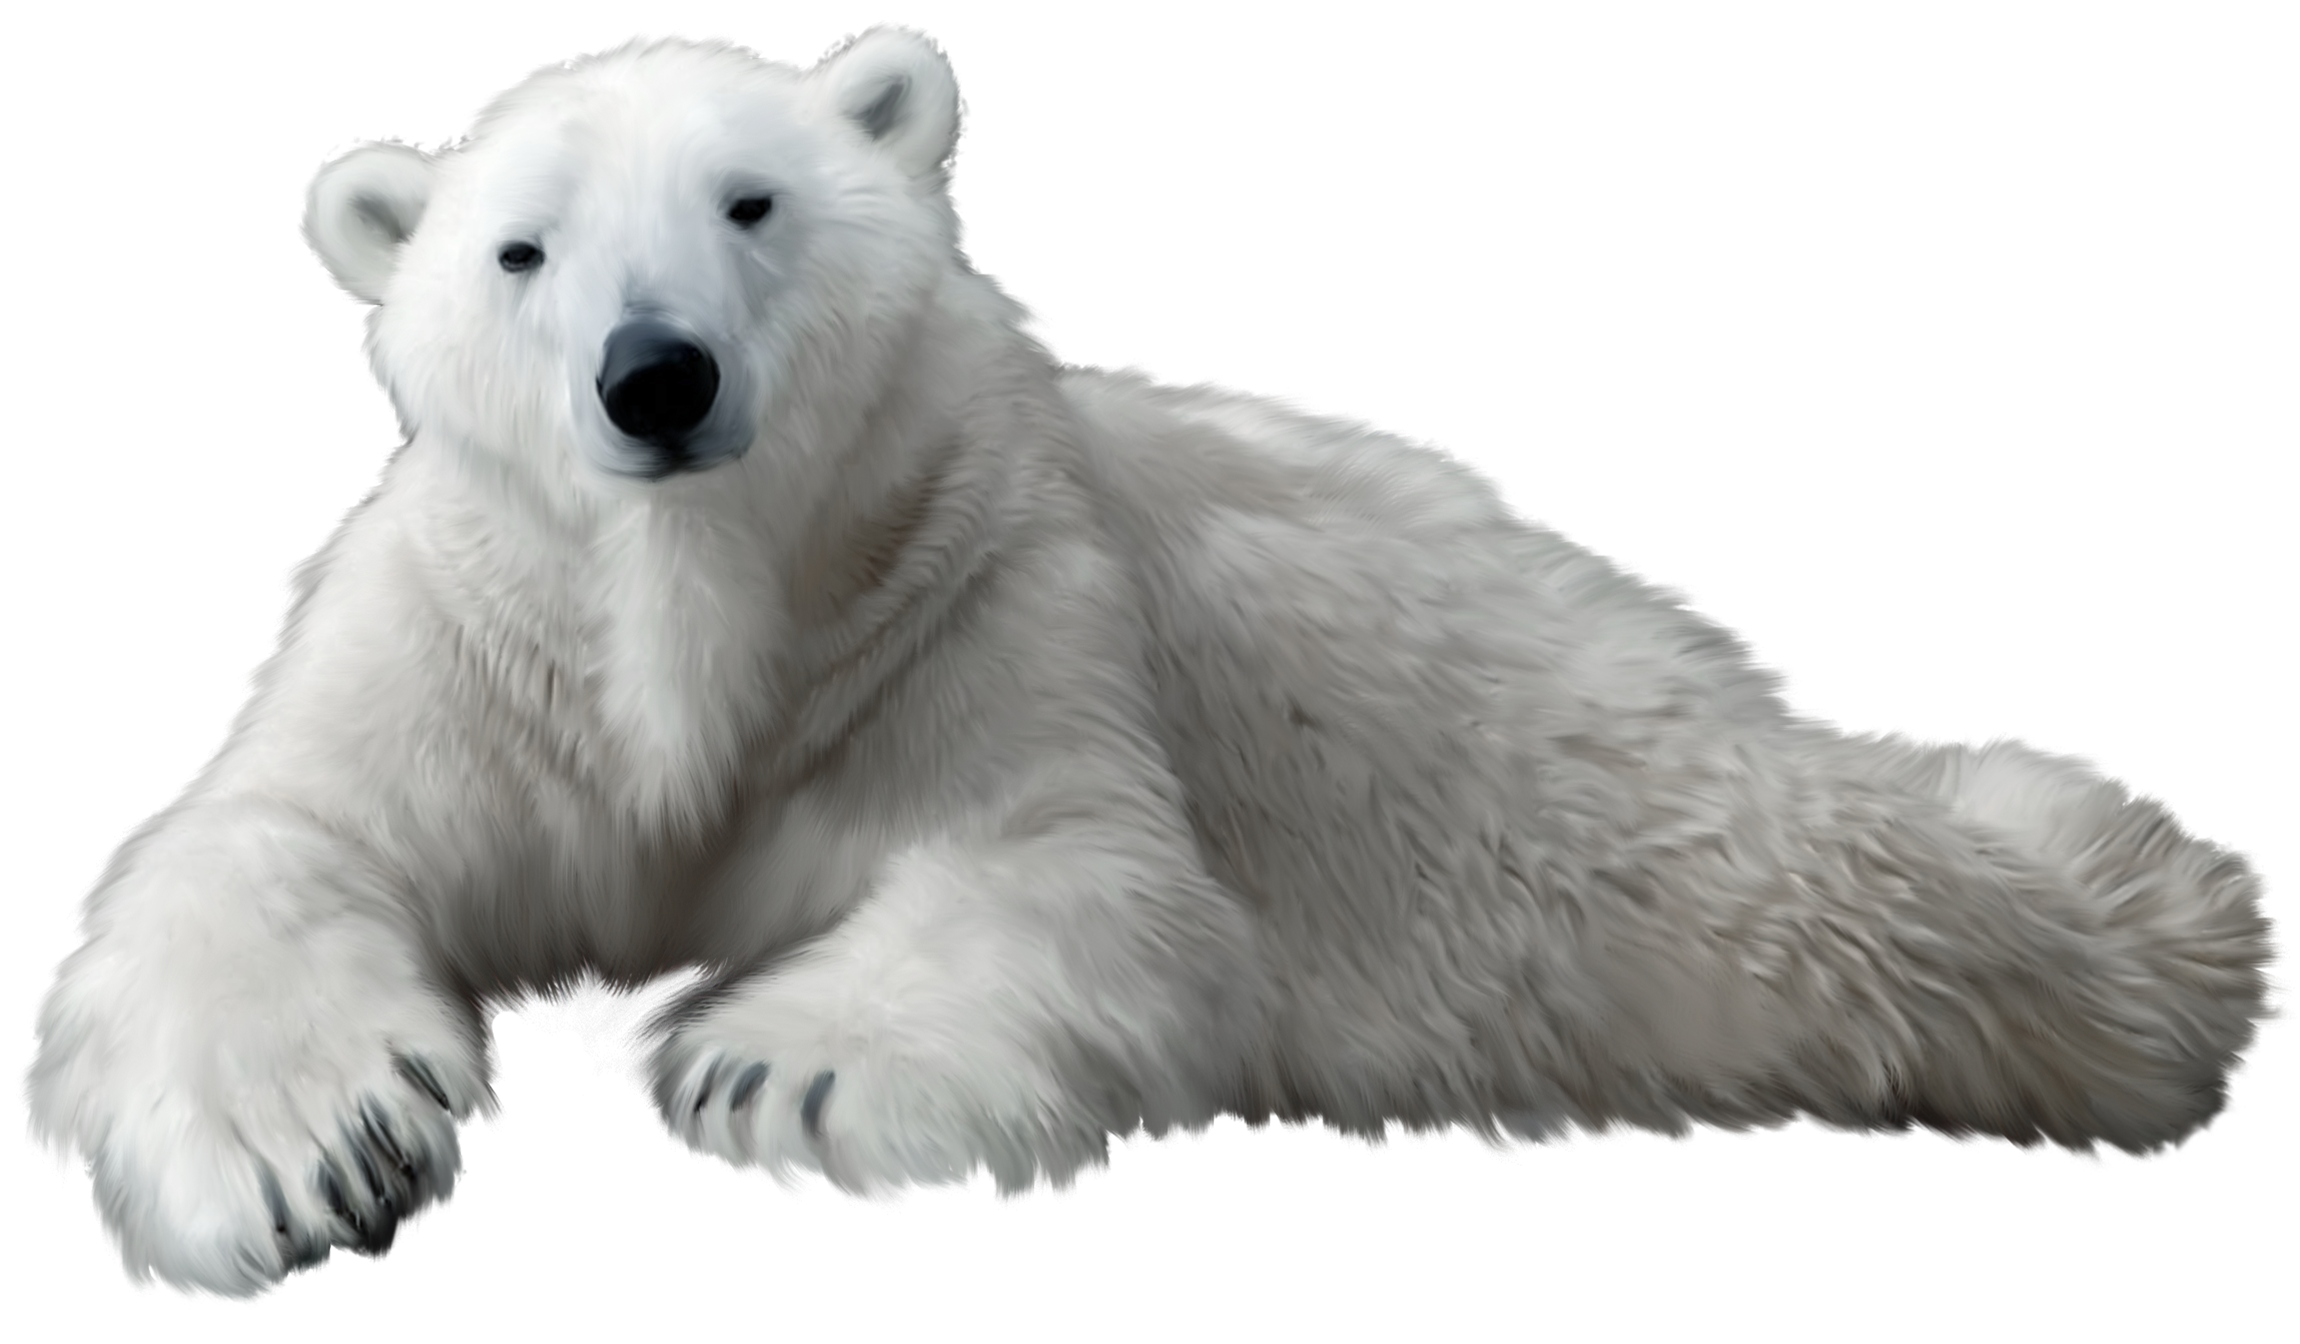 polar bear png transparent polar bear png images pluspng bear clipart black and white bear clipart black and white free